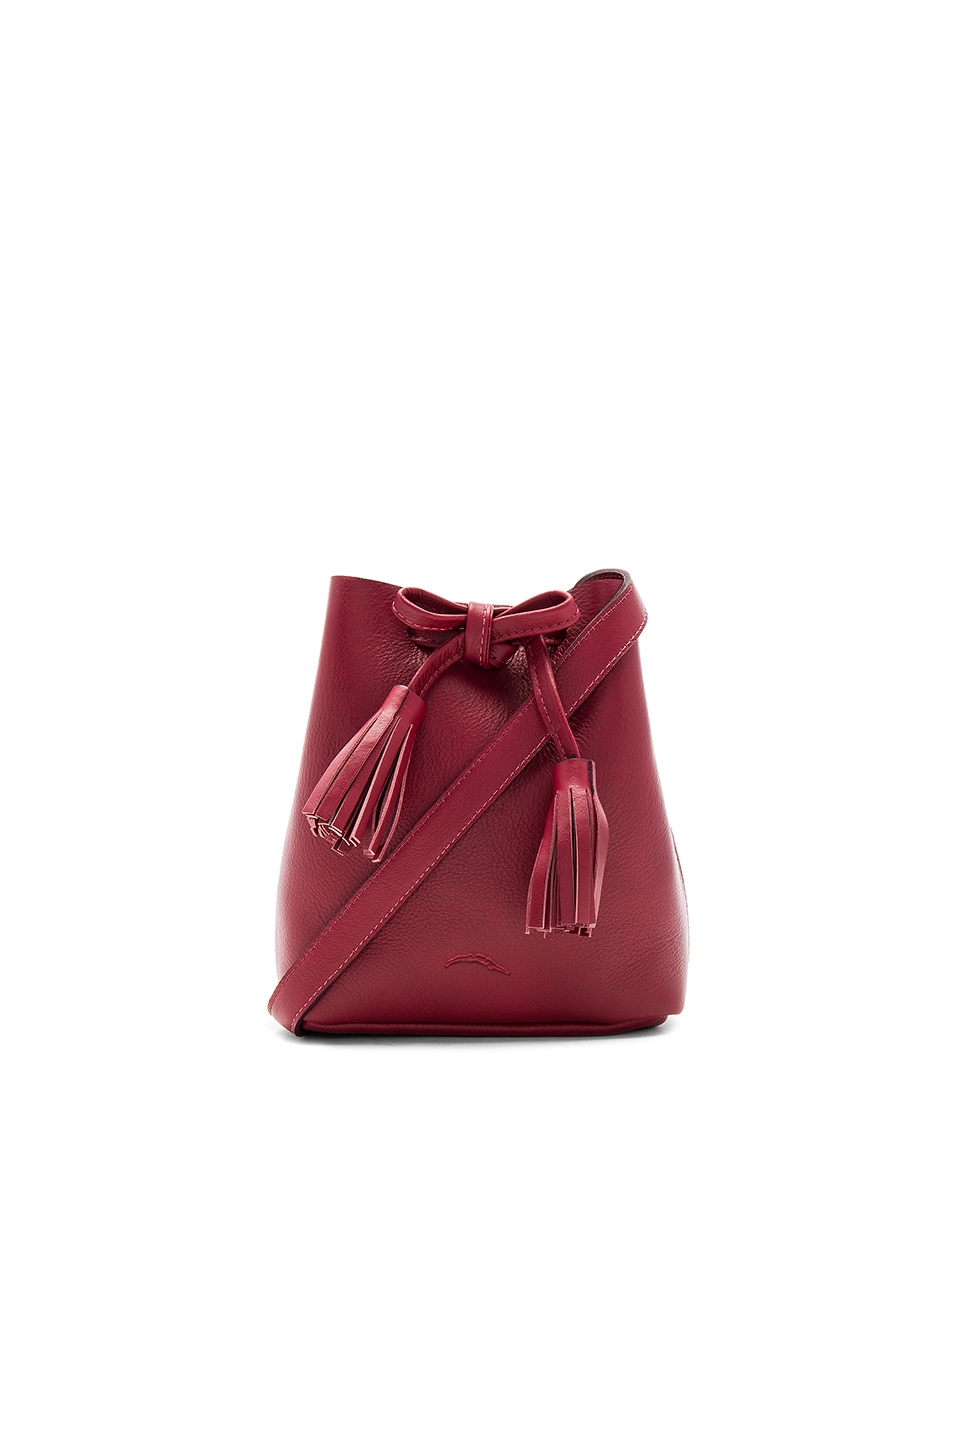 Shaffer Greta Bucket Bag in Merlot